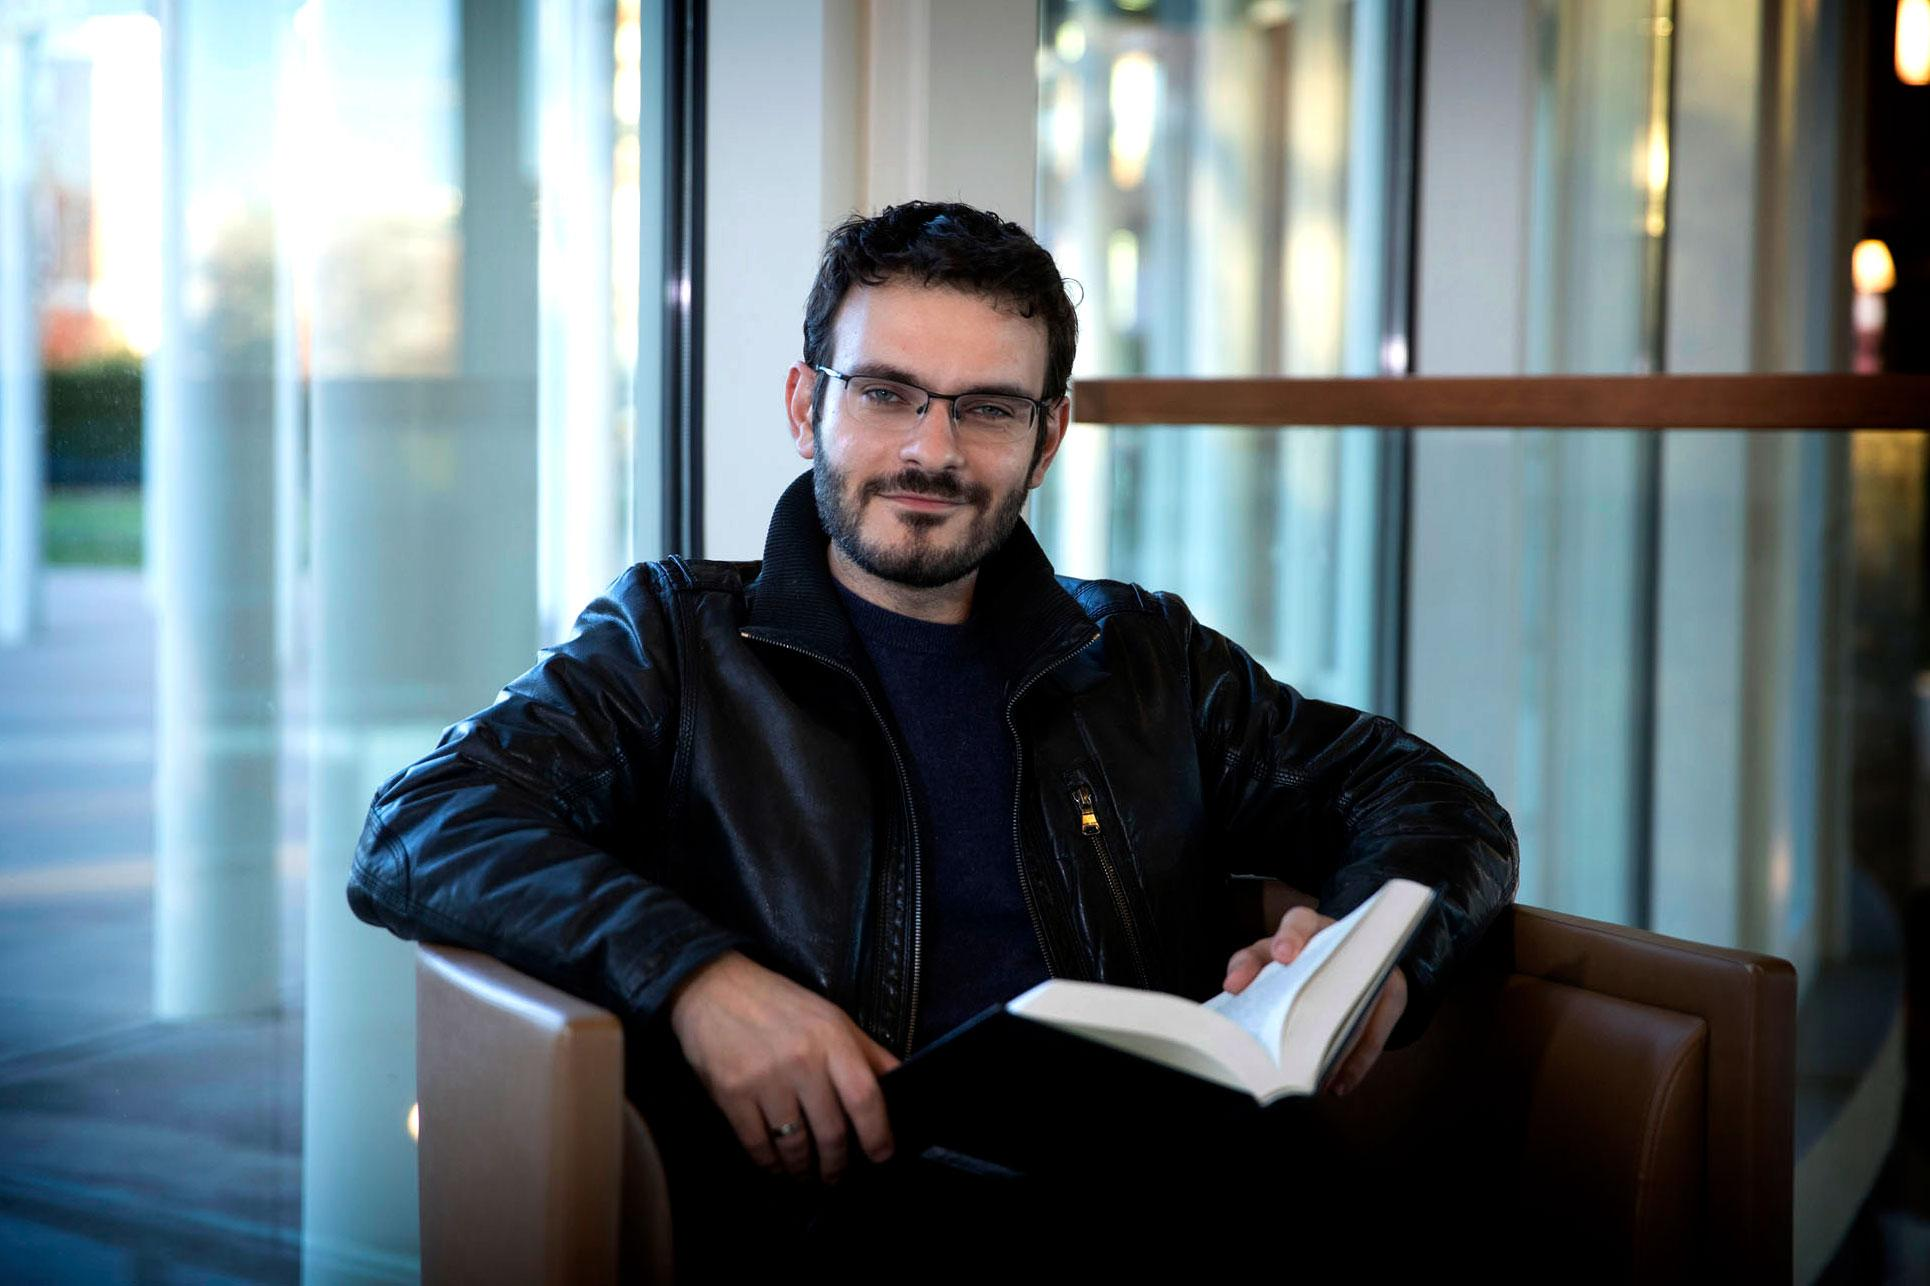 Murad Idris, an assistant professor of politics, focuses his scholarship on conceptions of peace.